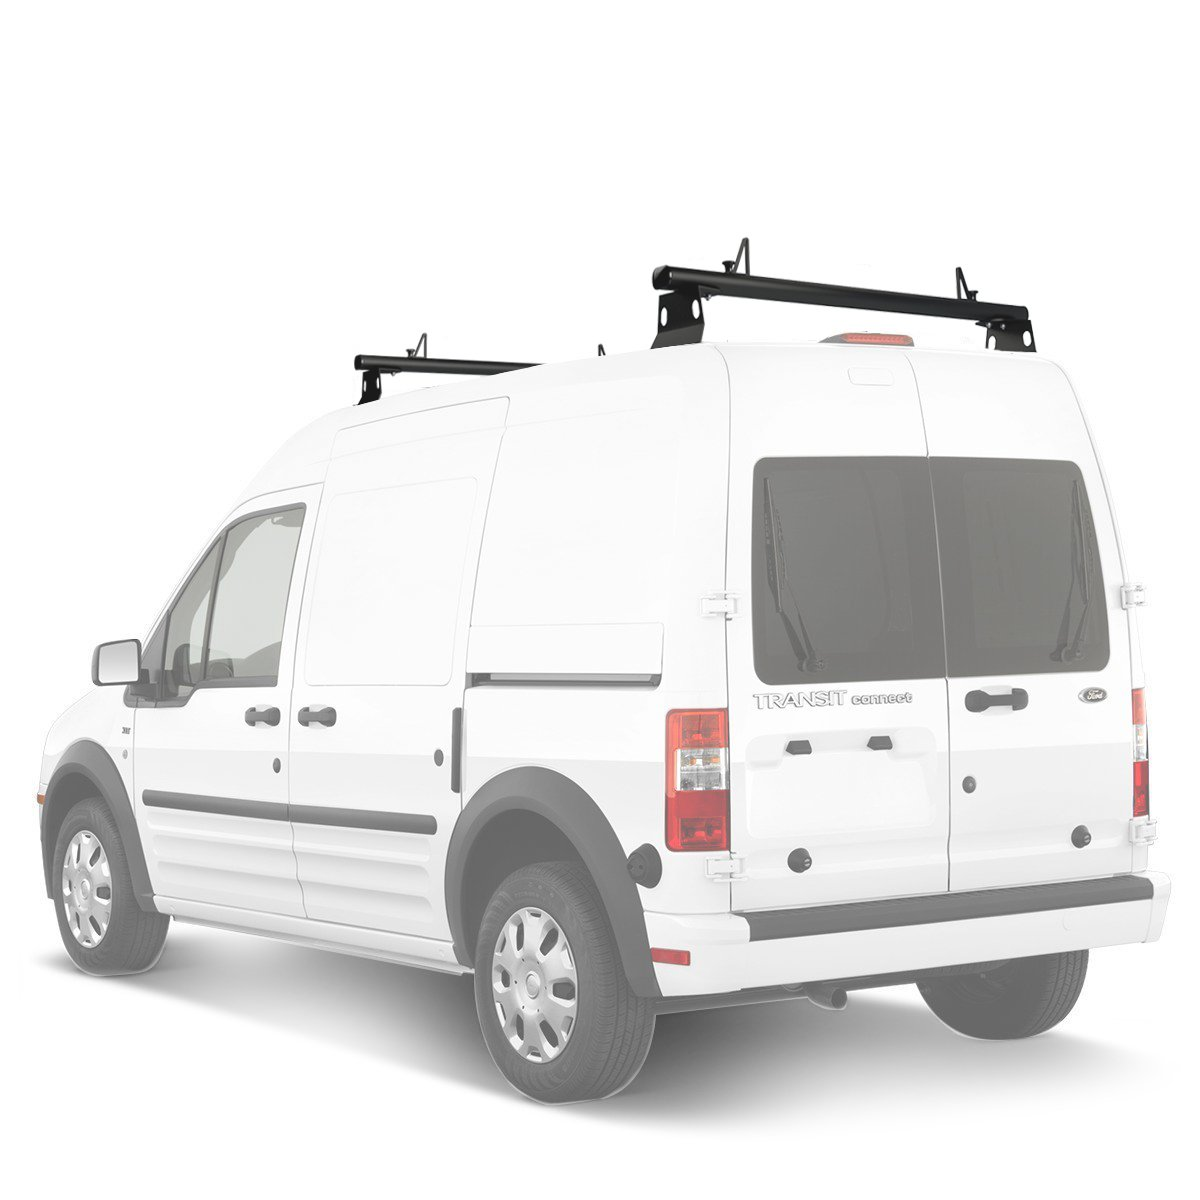 AA Products Inc. AA-Racks Model ADX32-TR Ford Transit Connect 2008-13 Aluminum 2 Bar (60') Utility Drilling Van Roof Rack System with Ladder Stopper Gloss White